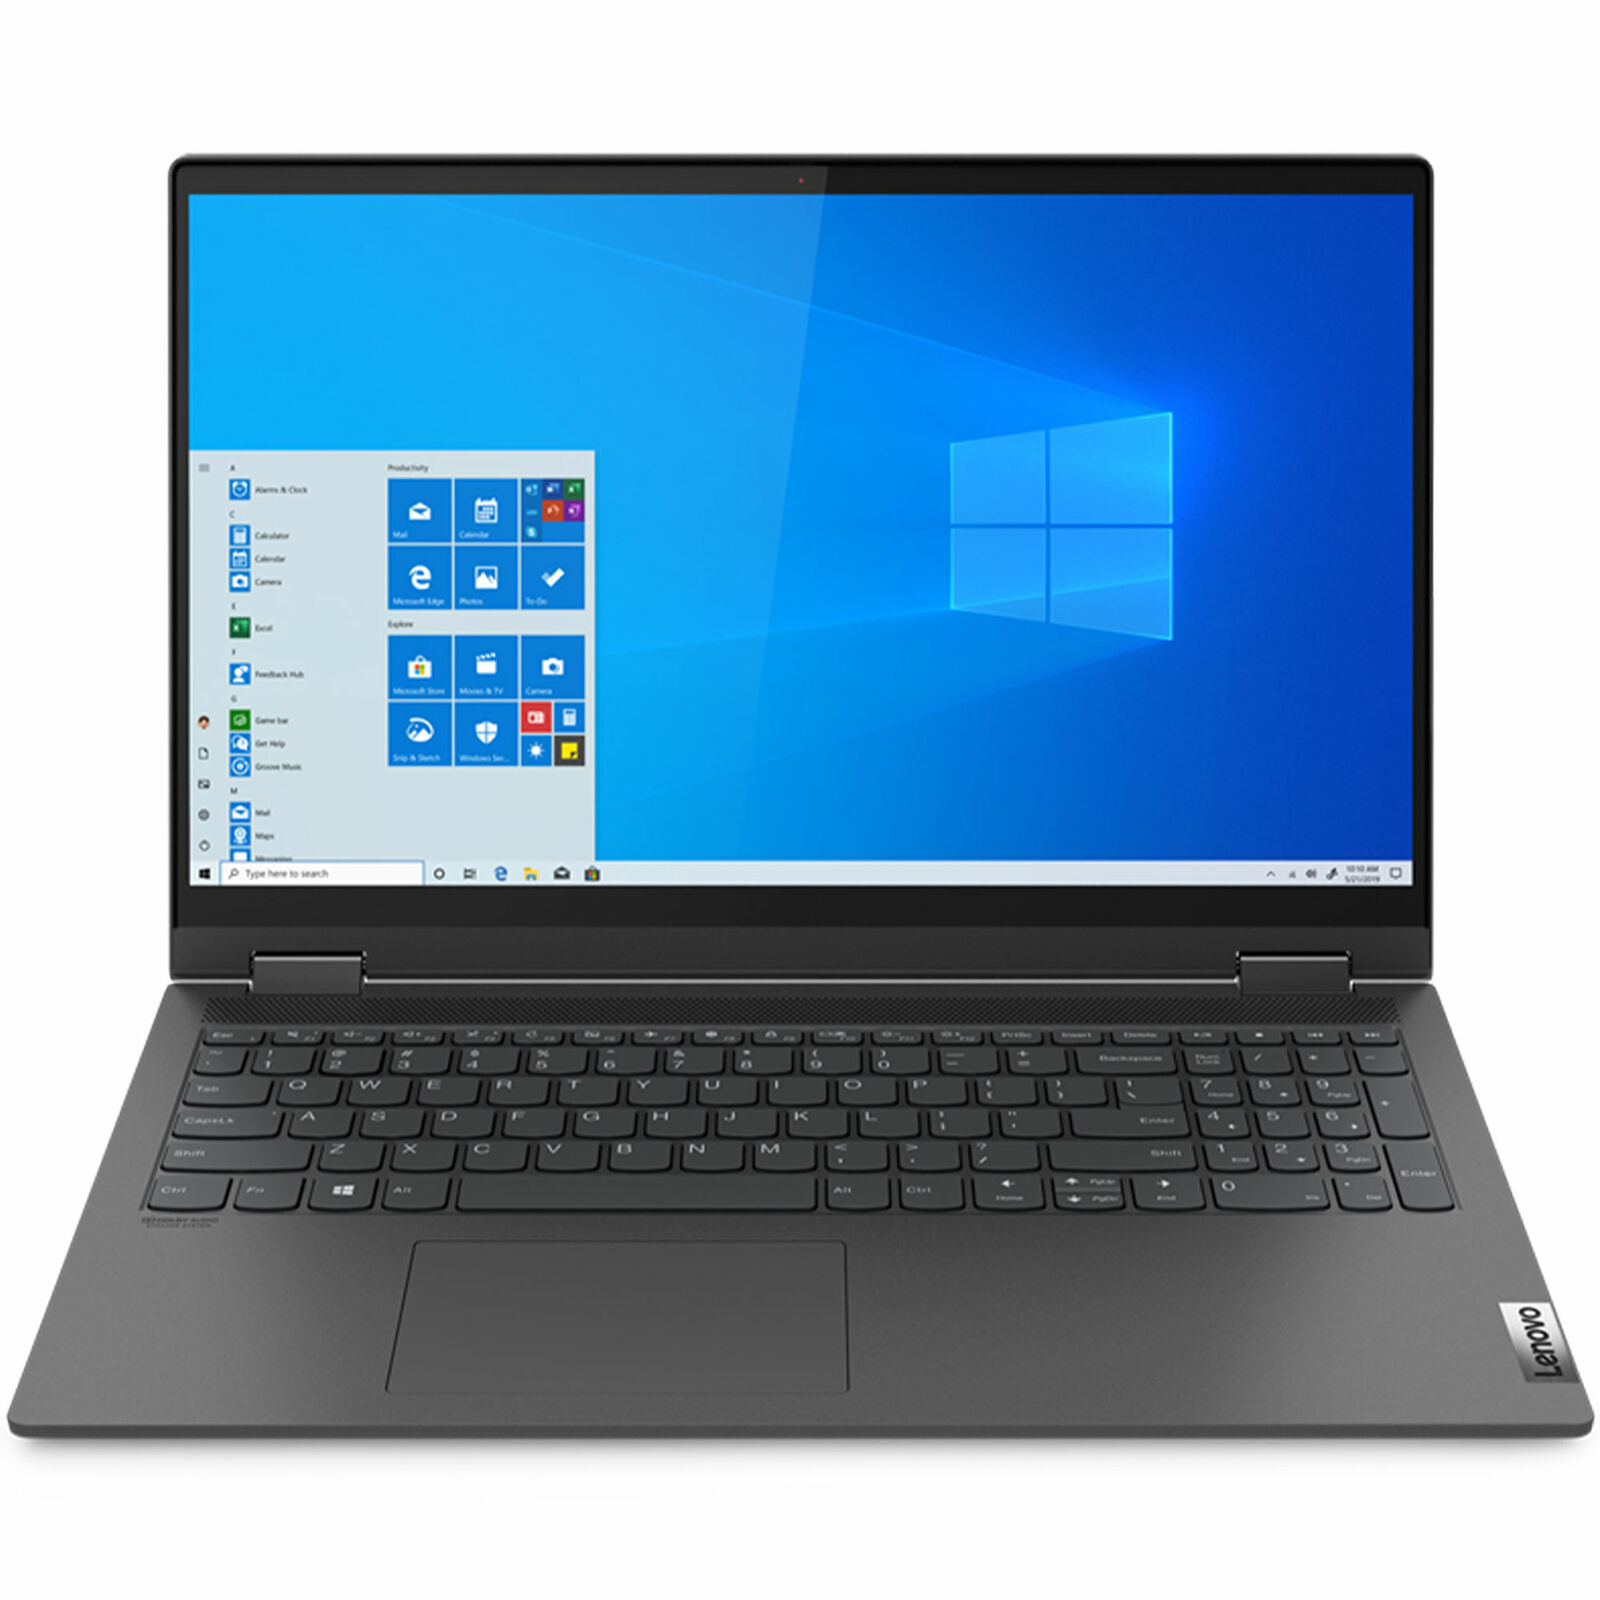 Lenovo IdeaPad (81X3000WUS) 15.6″ Convertible 2-in-1 Touch Laptop/Tablet, 10th Gen Core i7, 16GB RAM, 1TB SSD